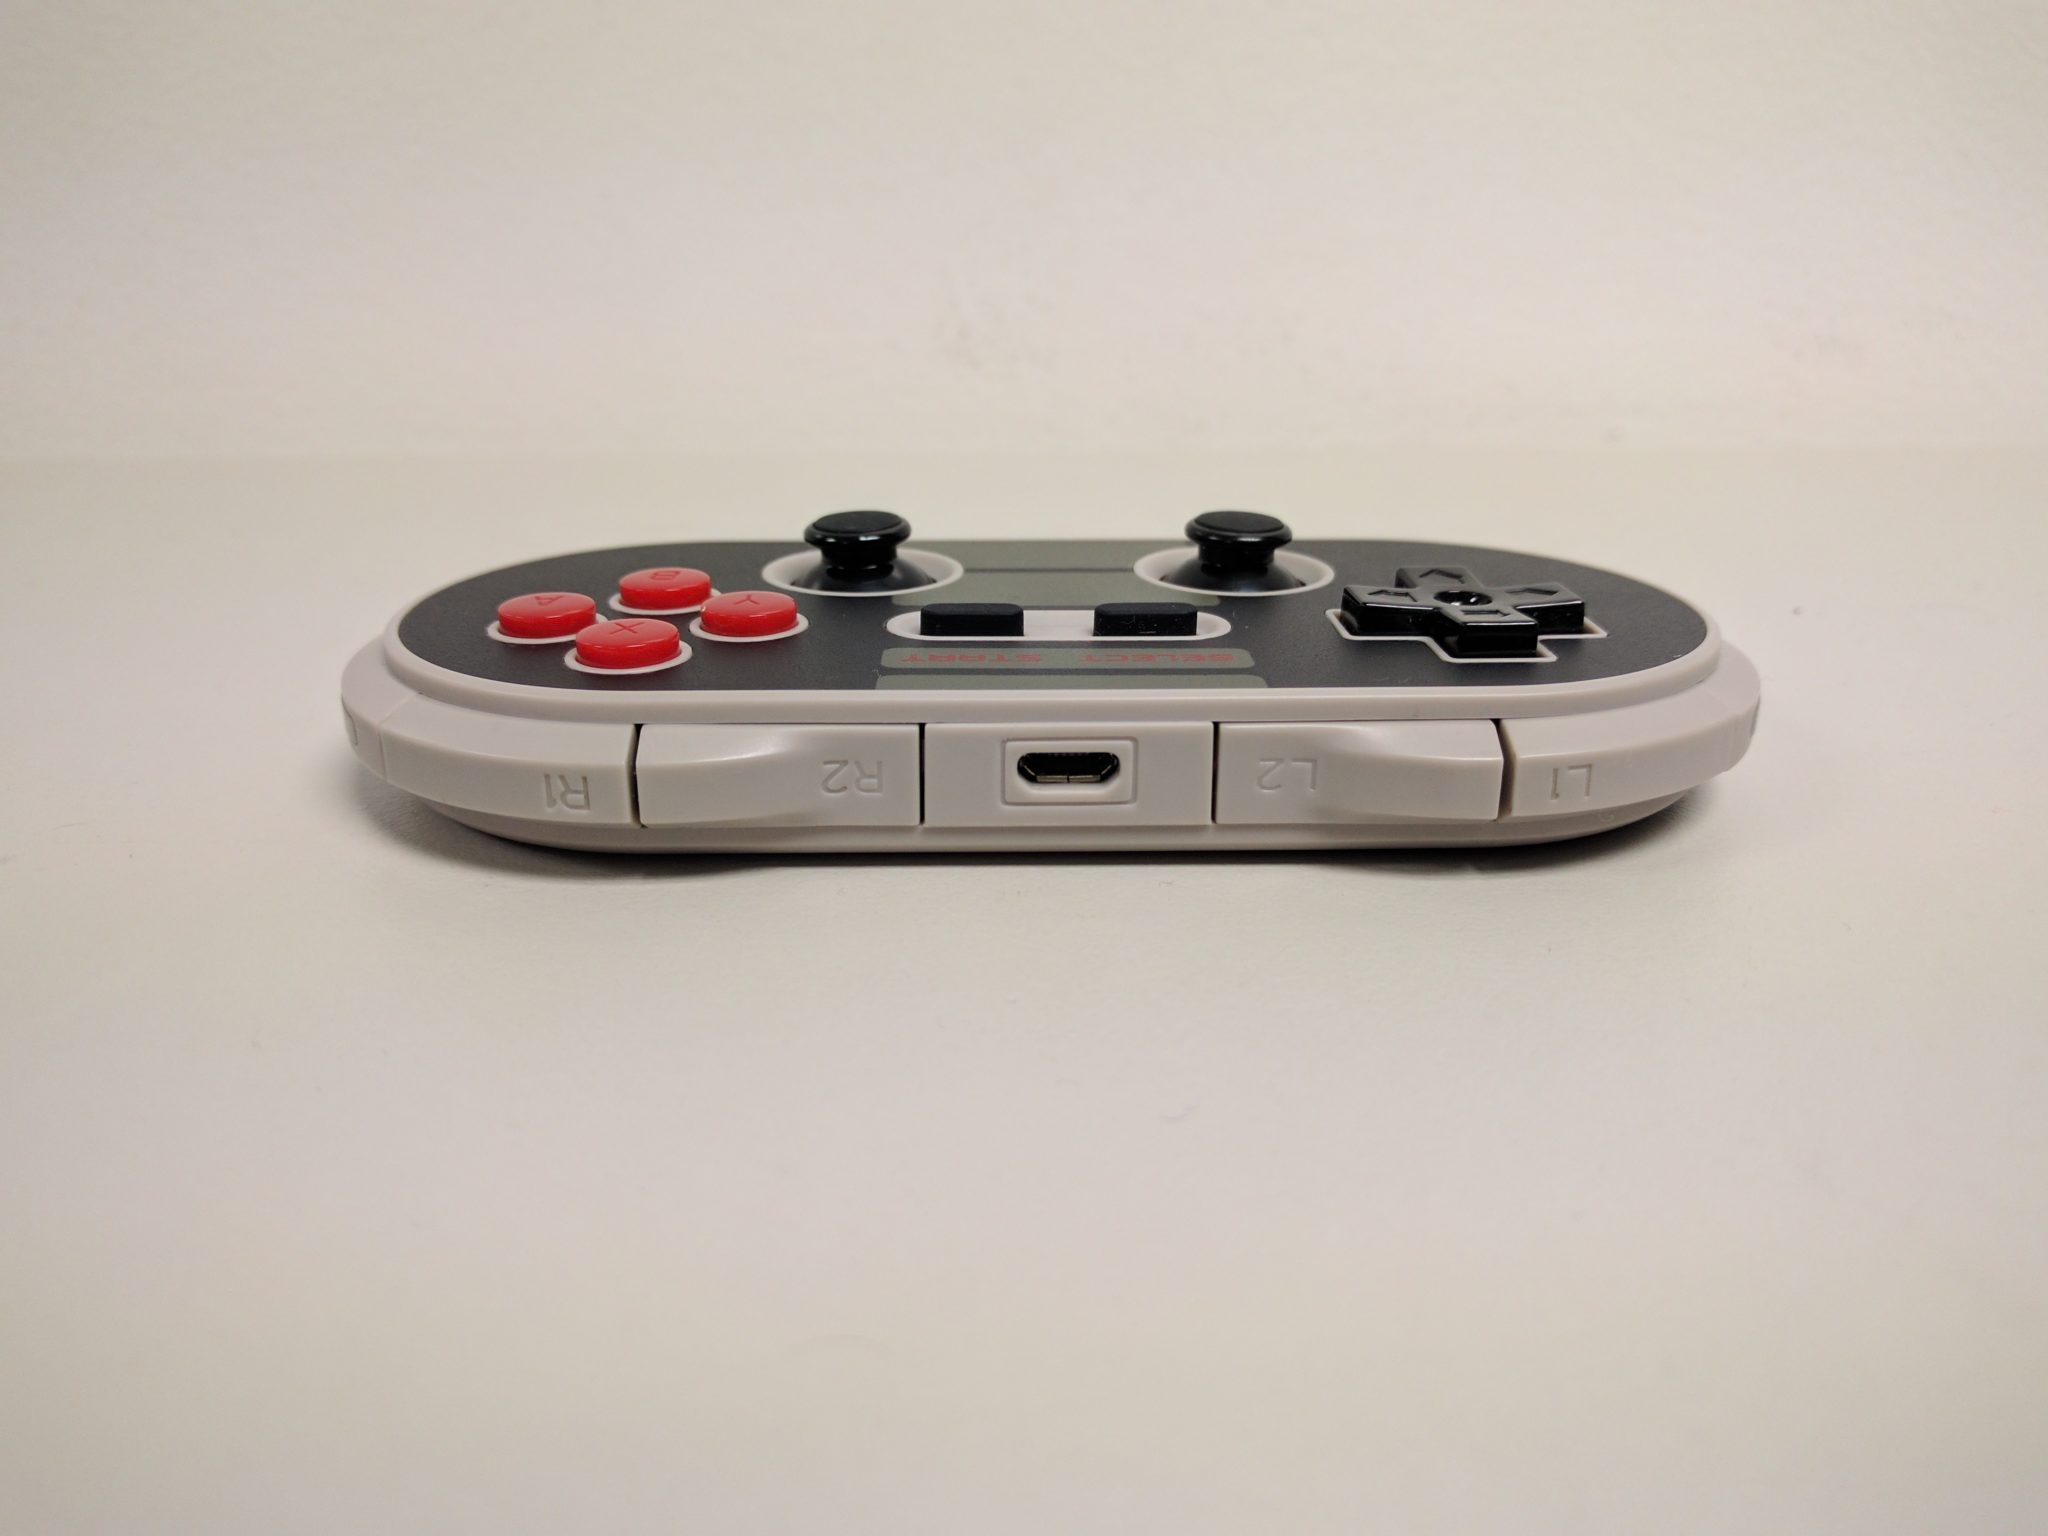 8bitdo NES30 Pro Game Controller on the Nintendo Switch Review